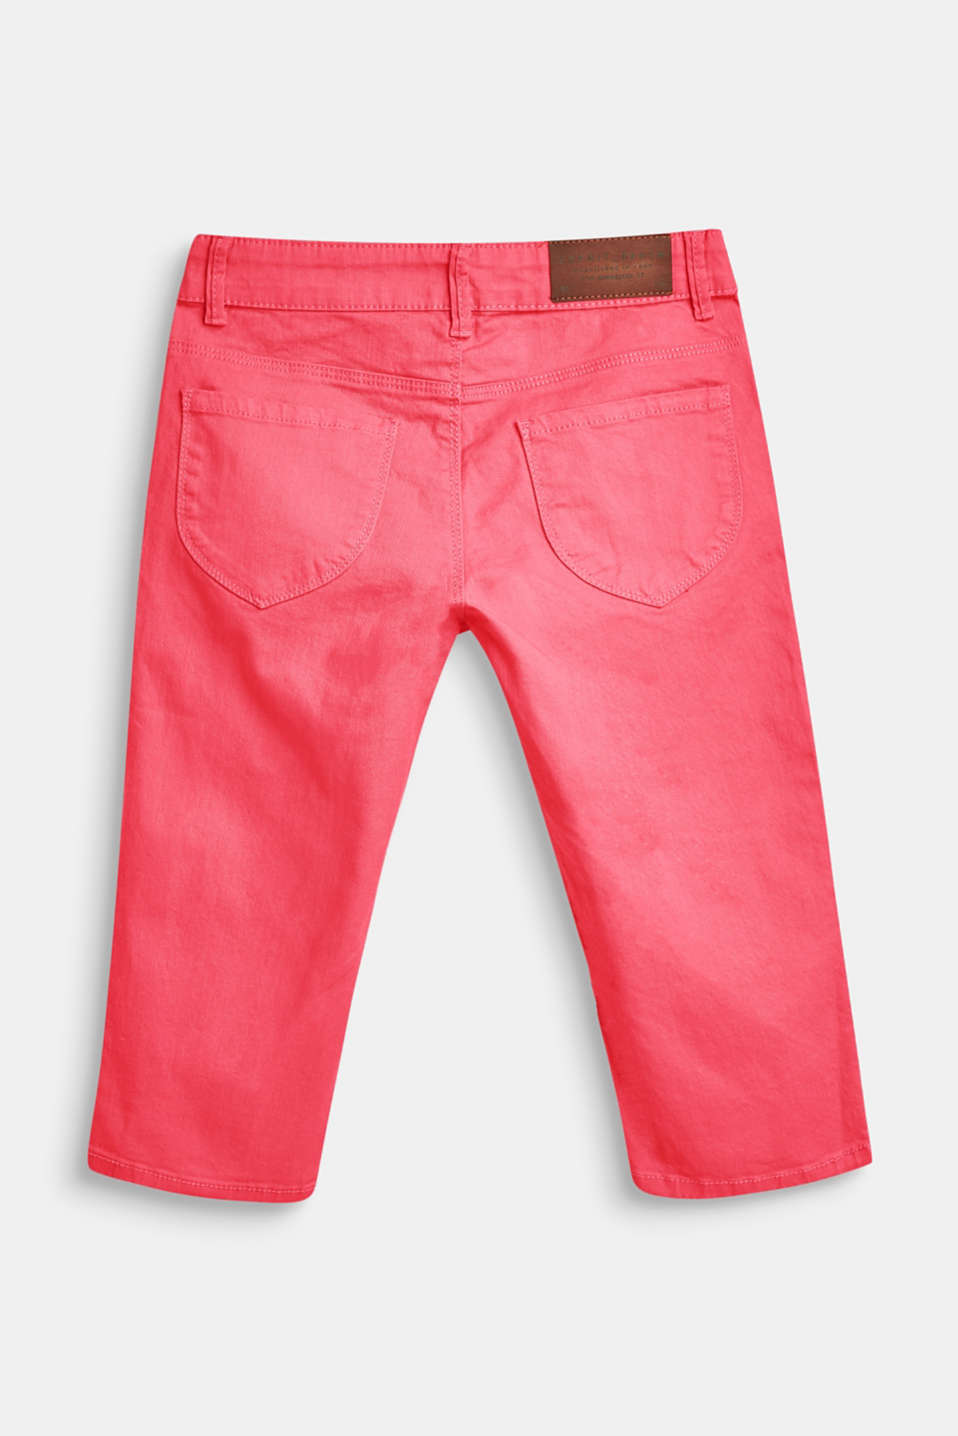 Coloured stretch jeans in a Capri length